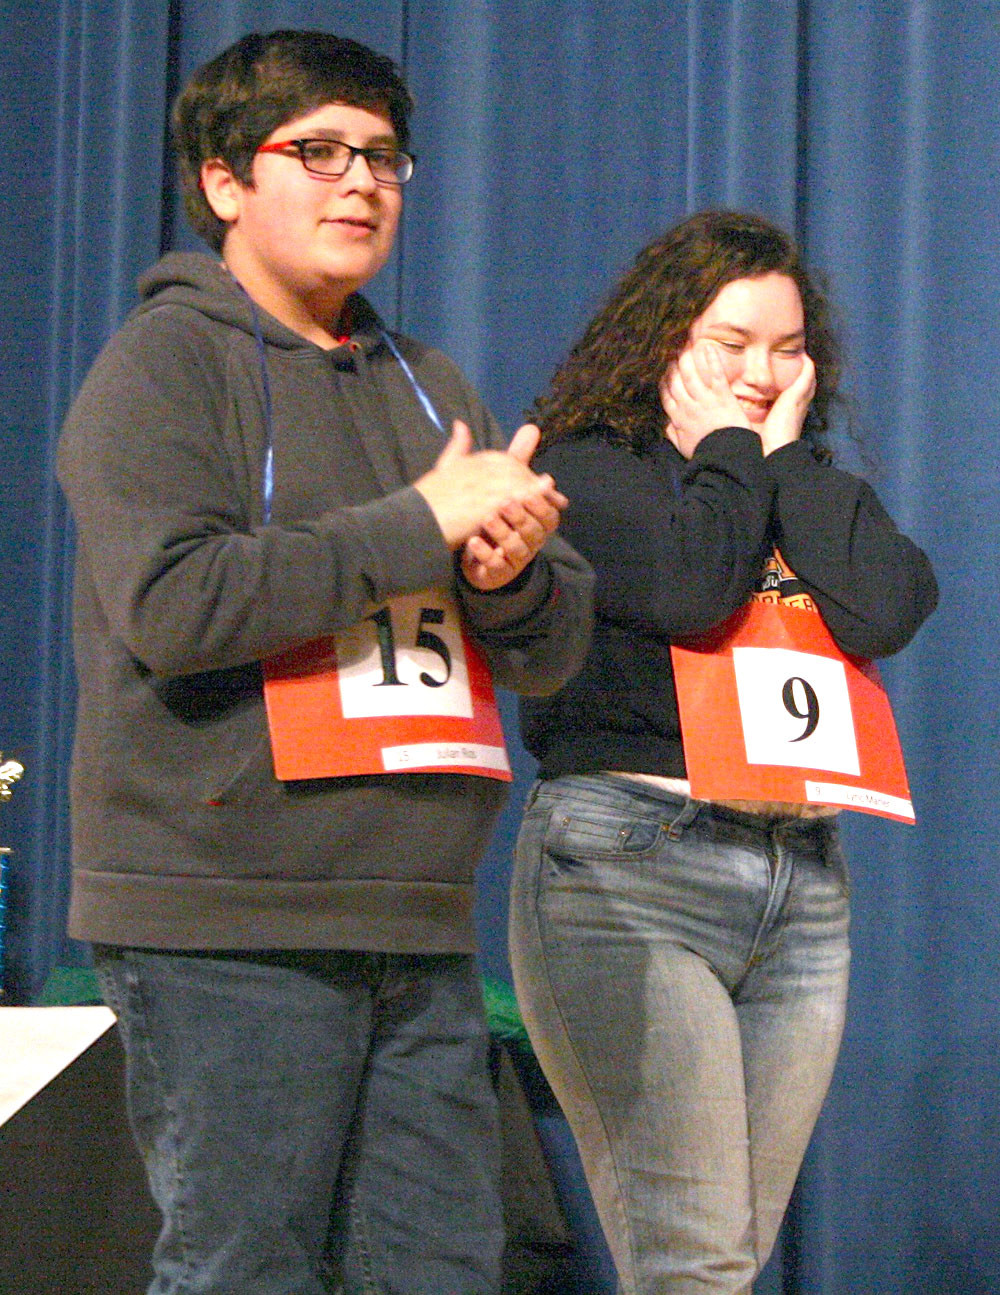 CLEVELAND MIDDLE eighth-grader Lyric Marler, right, reacts as she is named the winner of the Mildred Maupin Spelling Bee. With her is second-place winner Julian Rios.